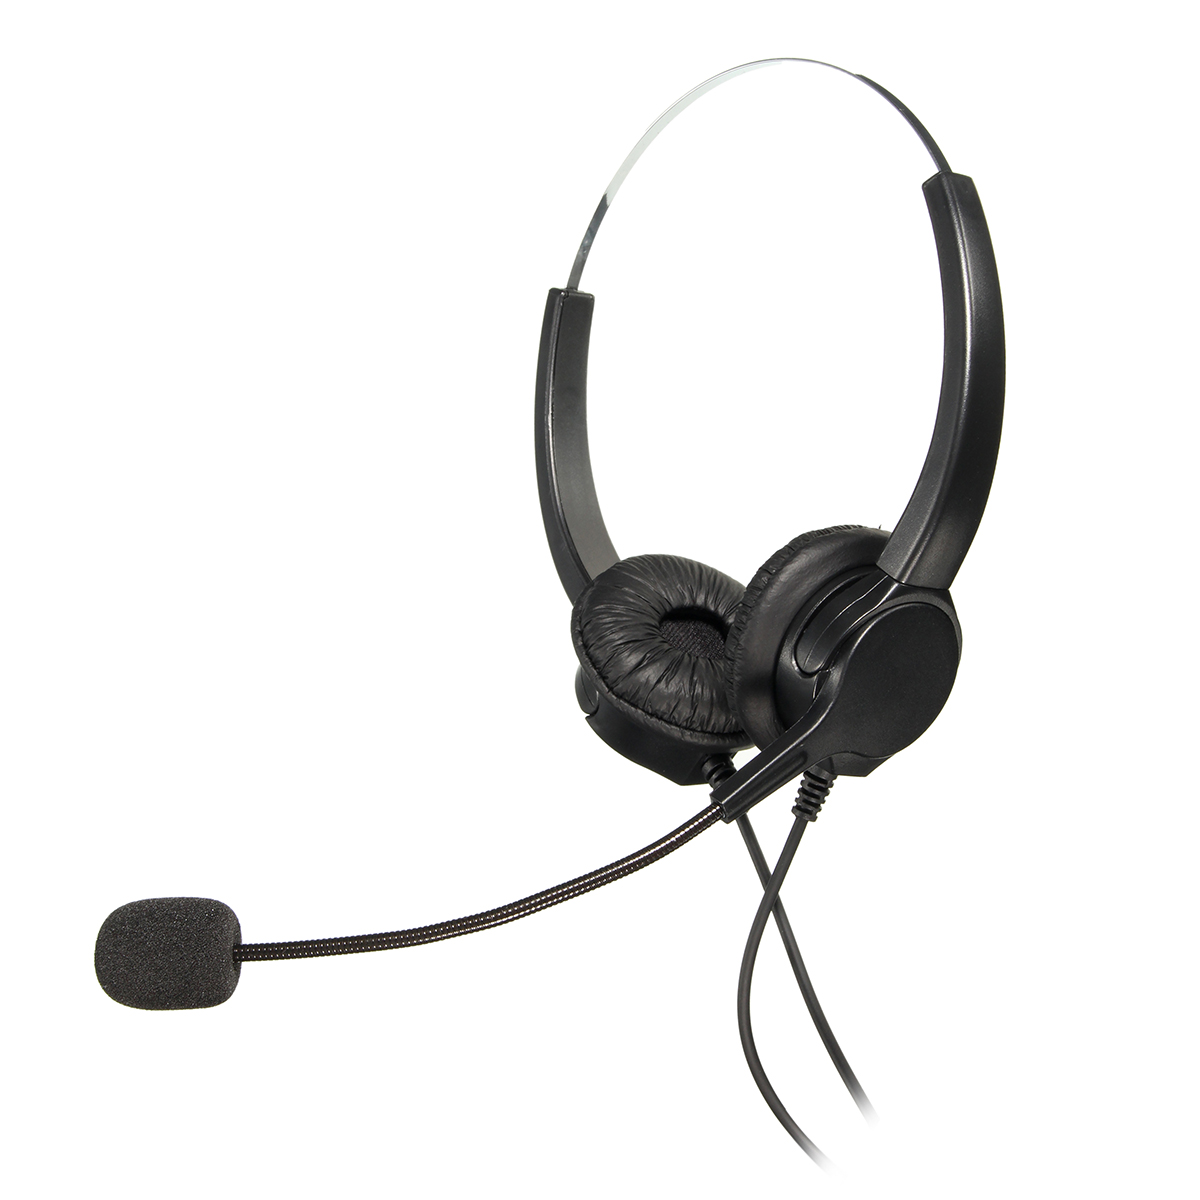 High Quality Call Center Binaural Headphones With Microphone Telephone Corded Headset Headphone Noise Cancelling Handsfree